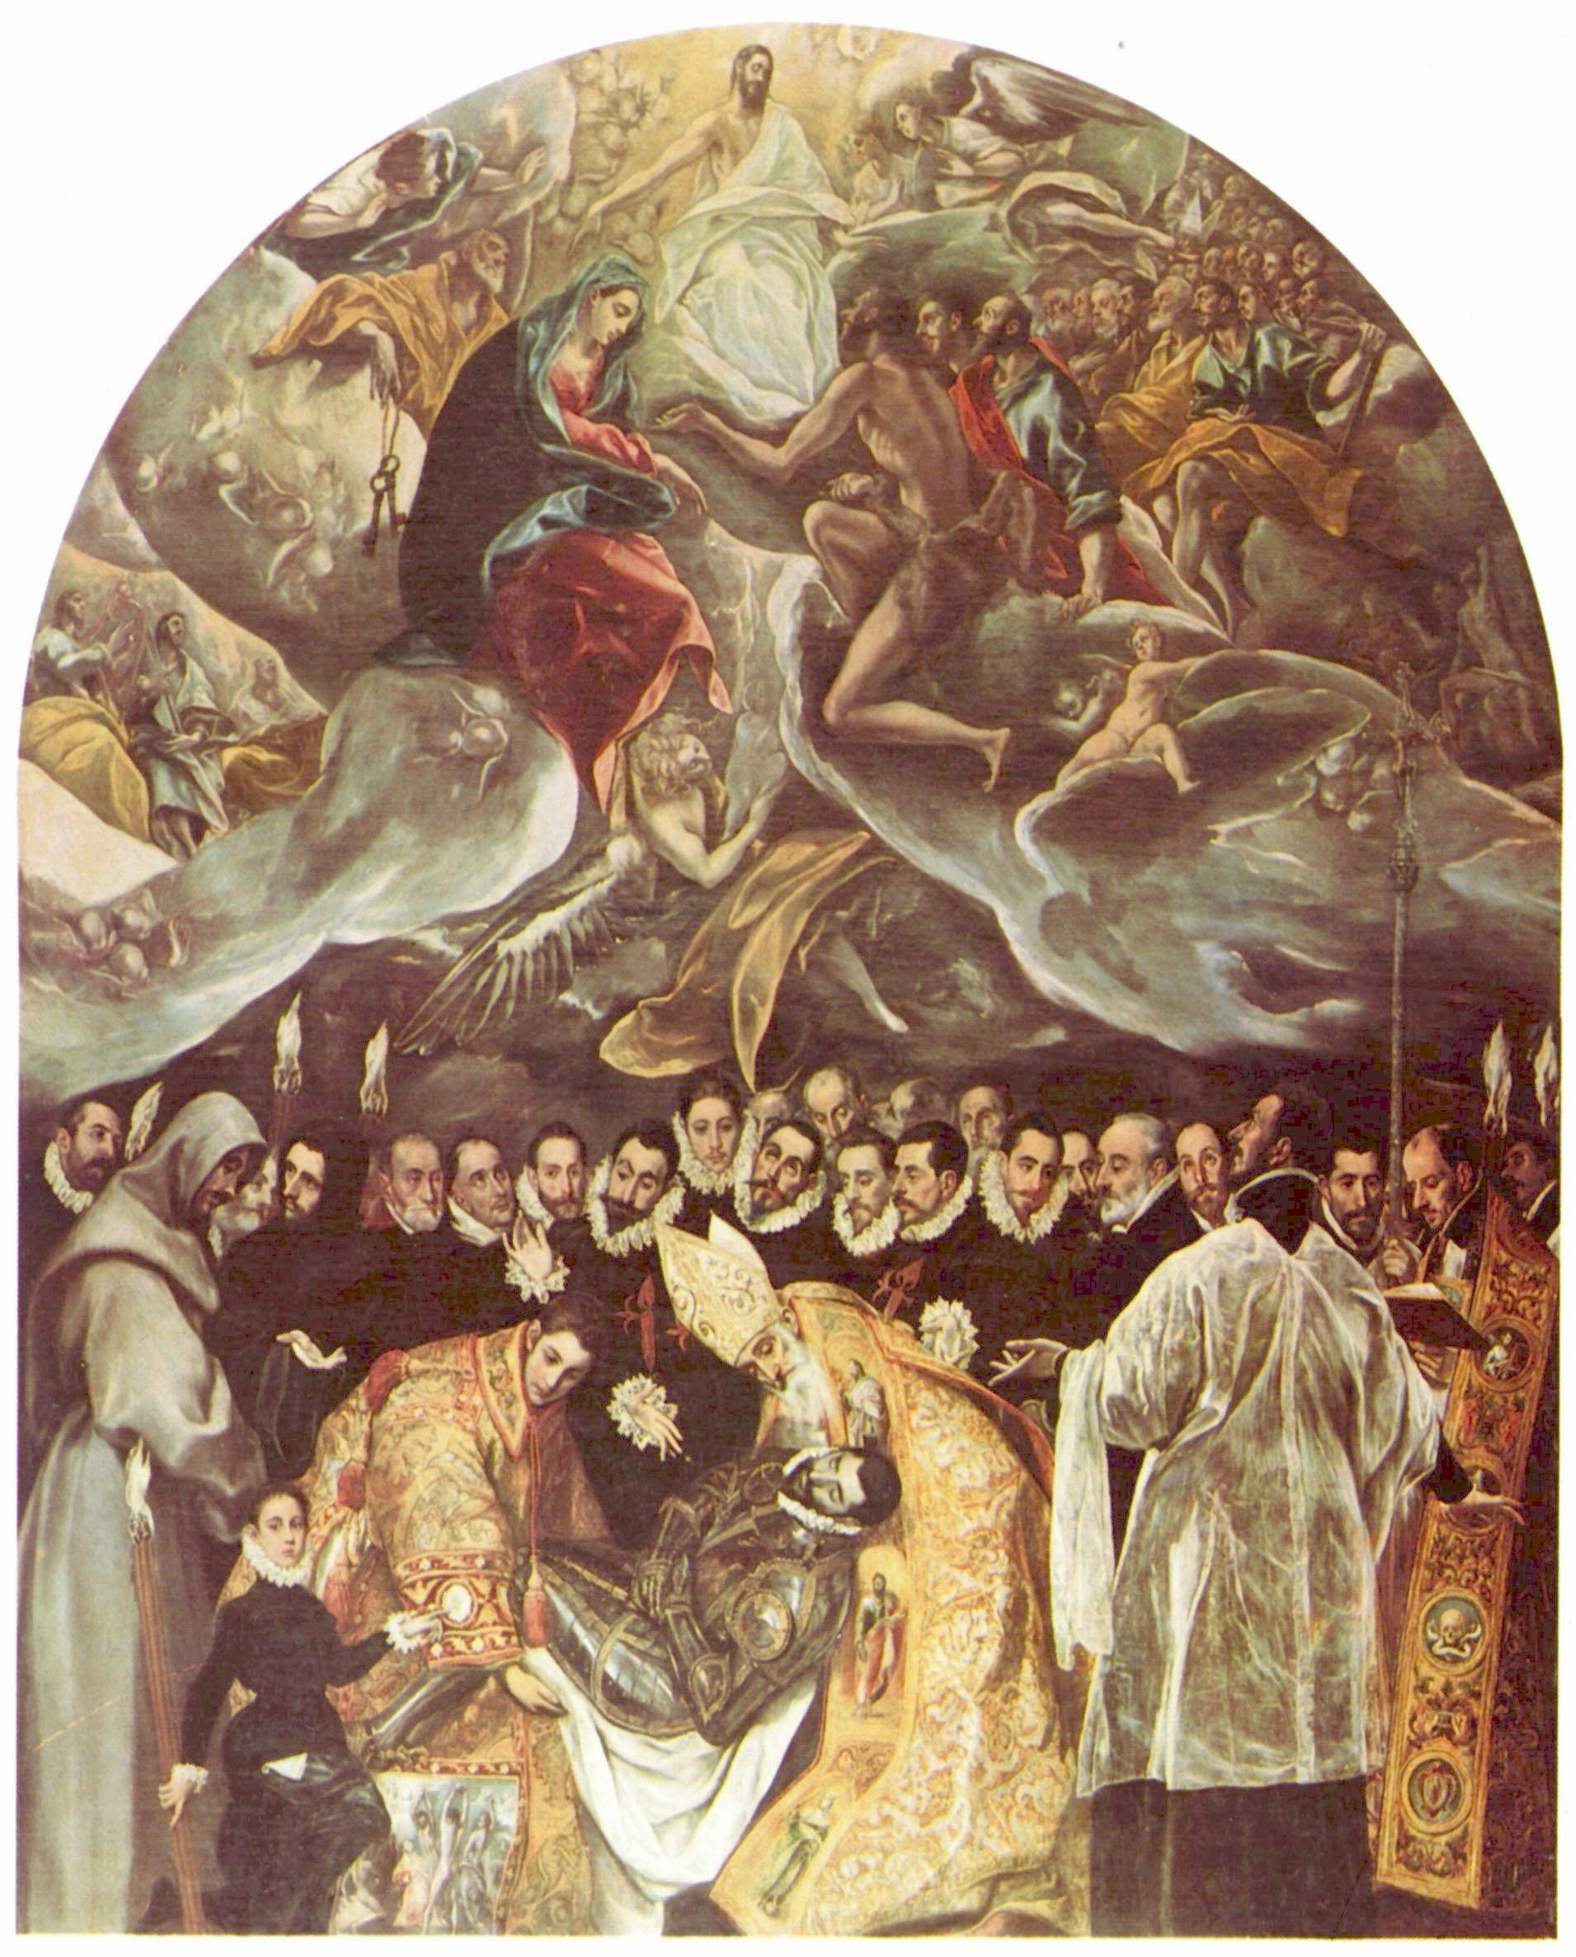 http://upload.wikimedia.org/wikipedia/commons/1/17/El_Greco_007.jpg